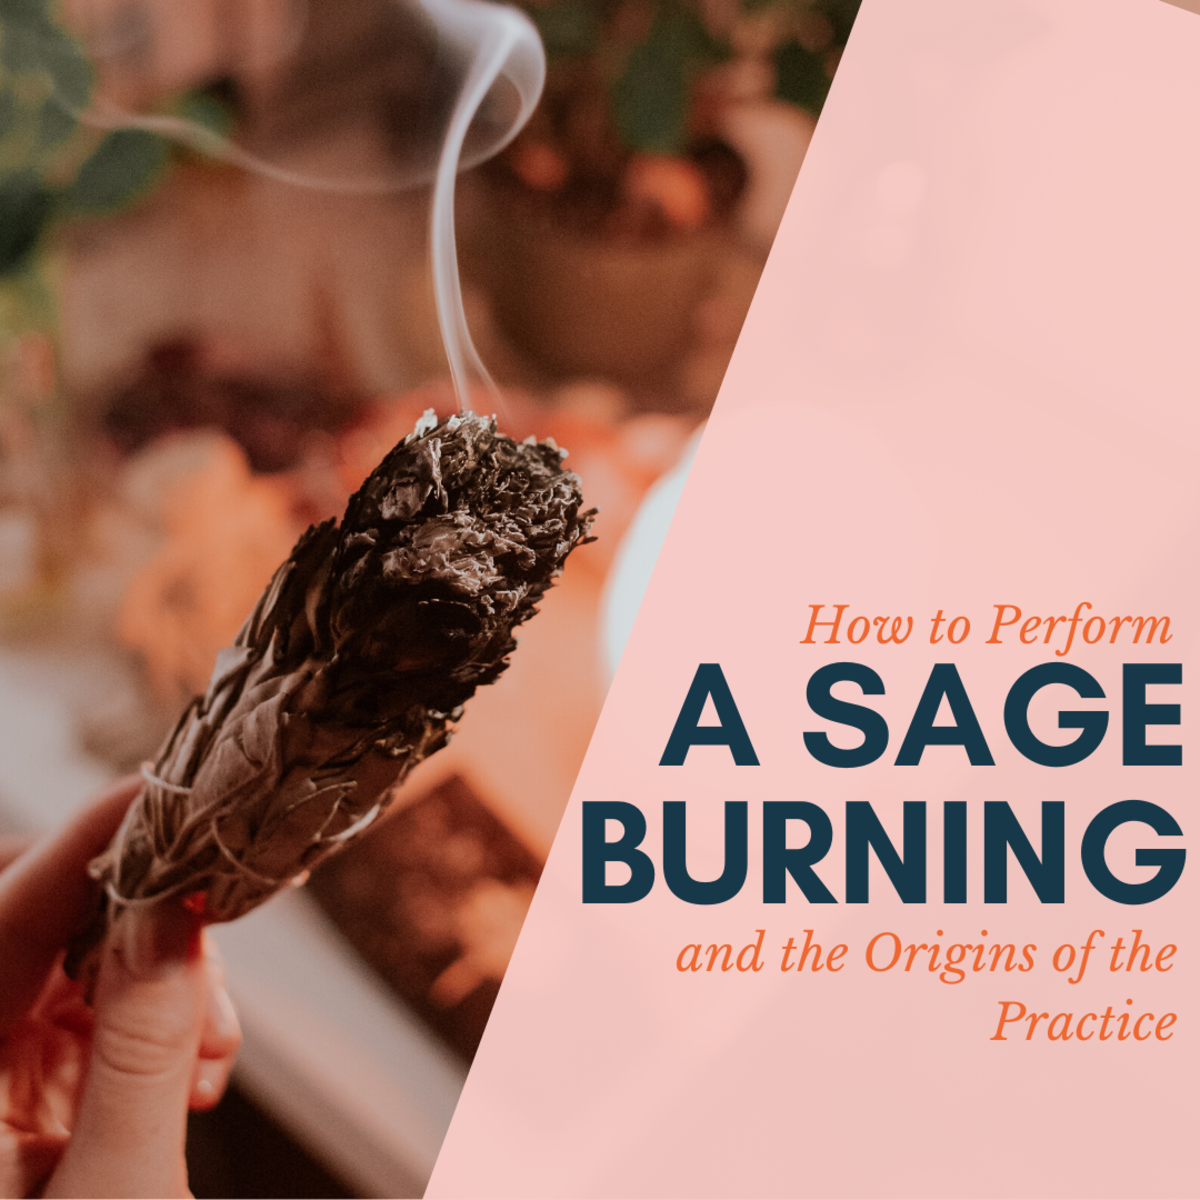 How to Burn Sage